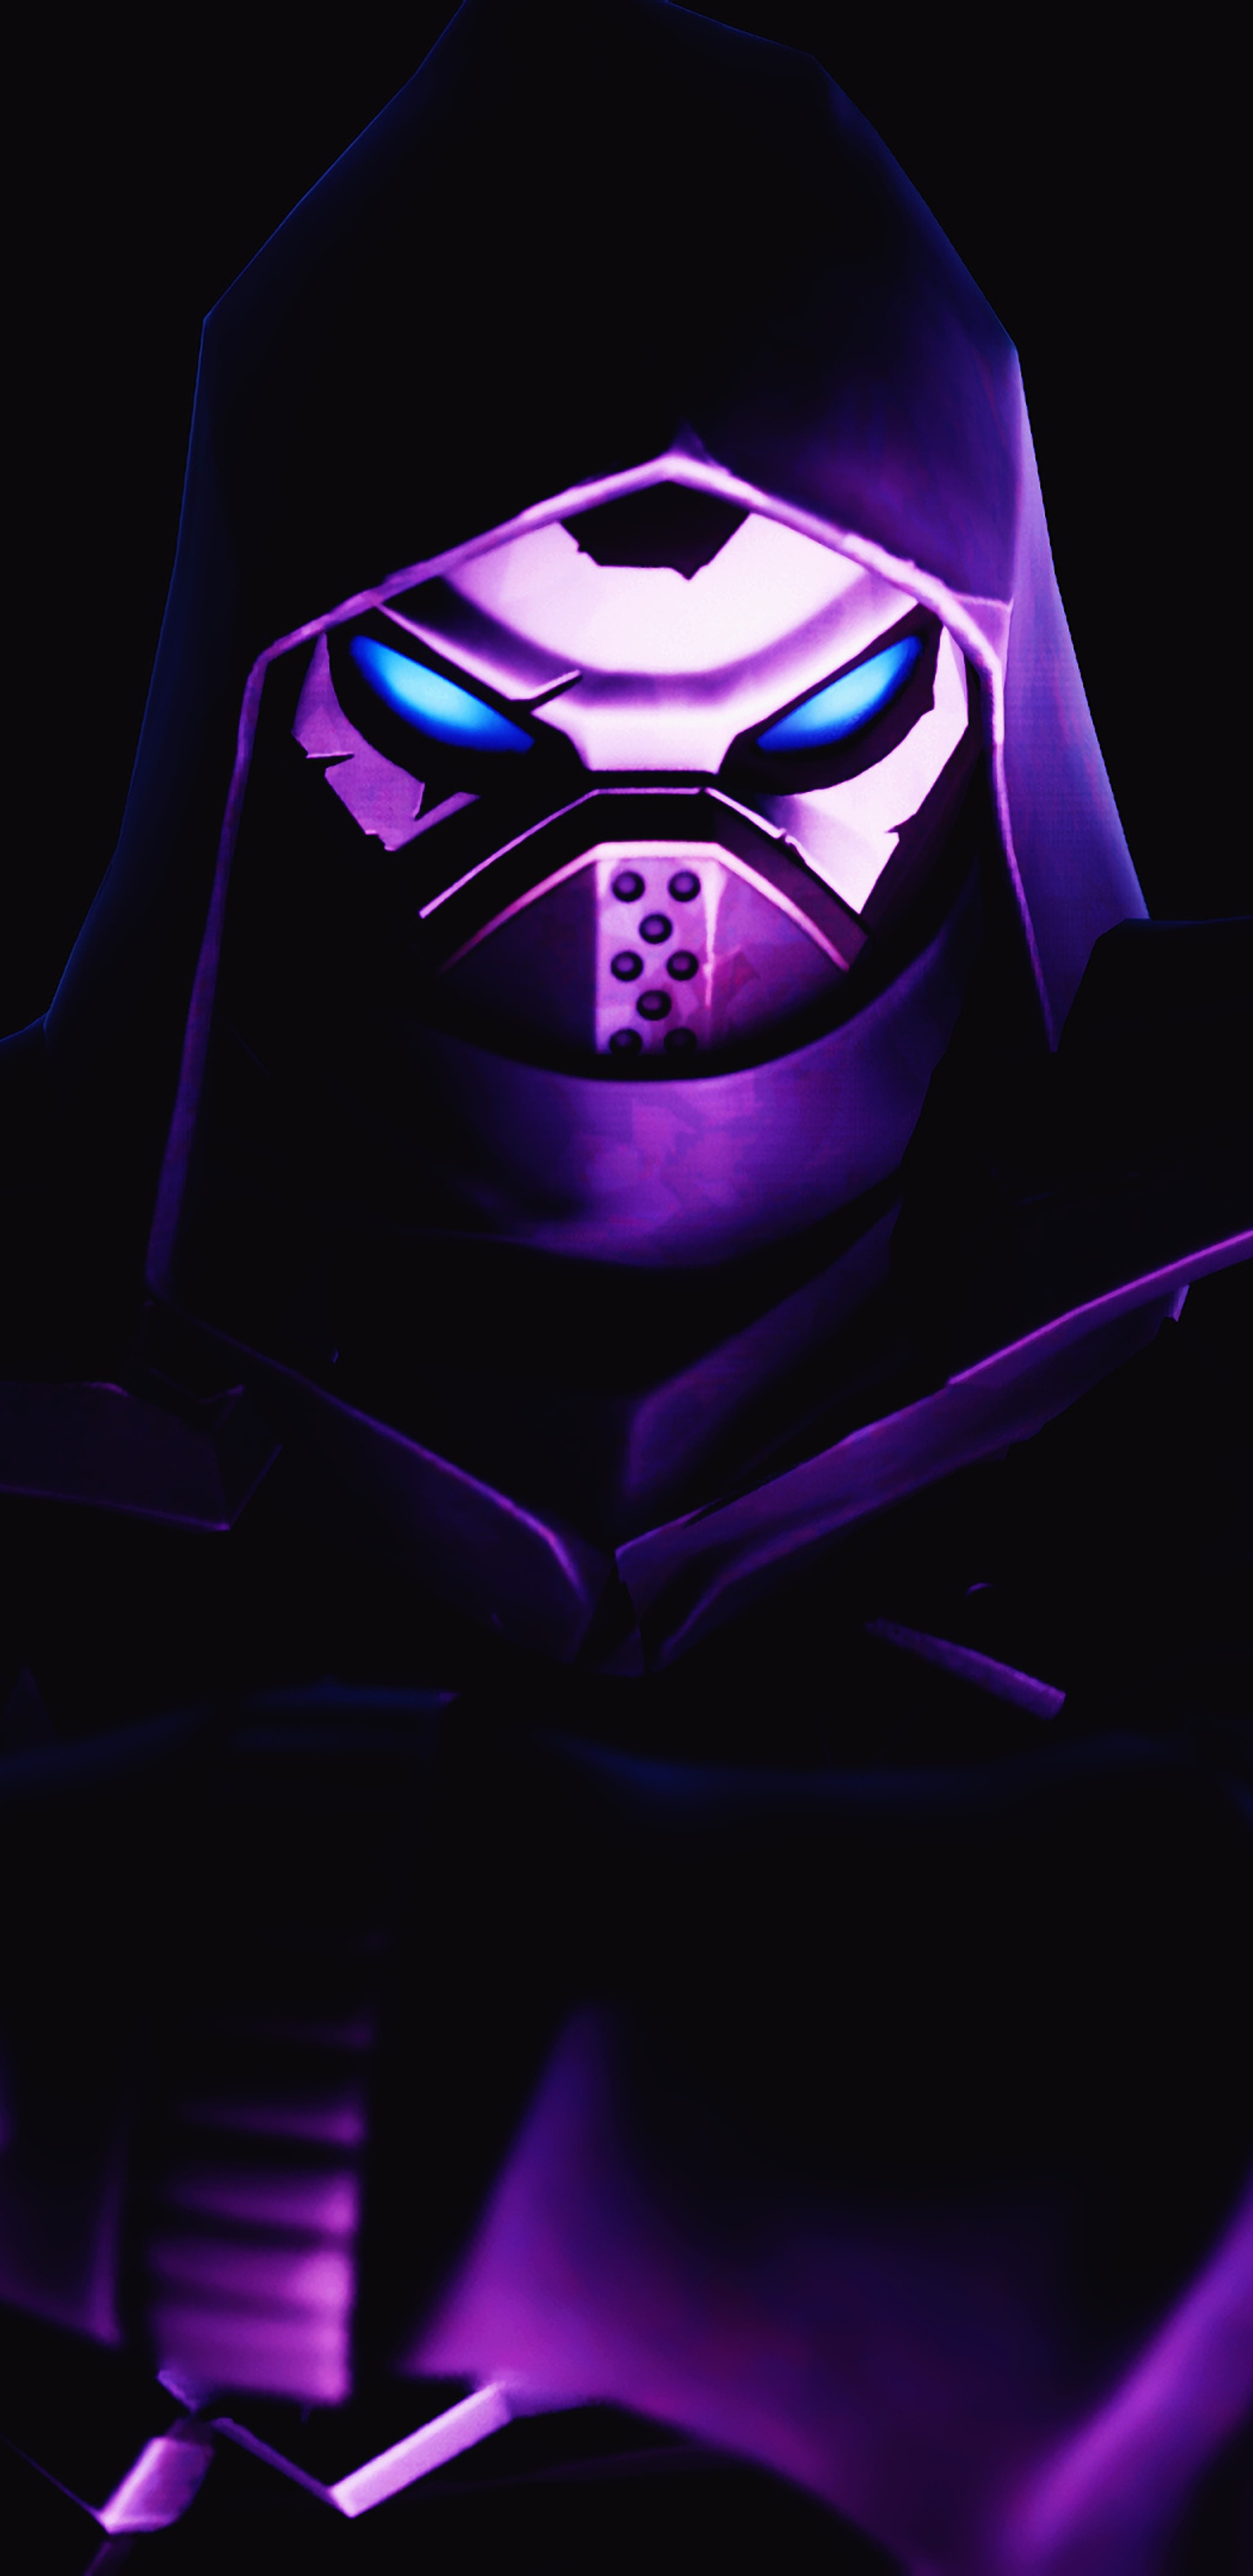 1440x2960 Fortnite The Enforcer 4k Samsung Galaxy Note 9,8